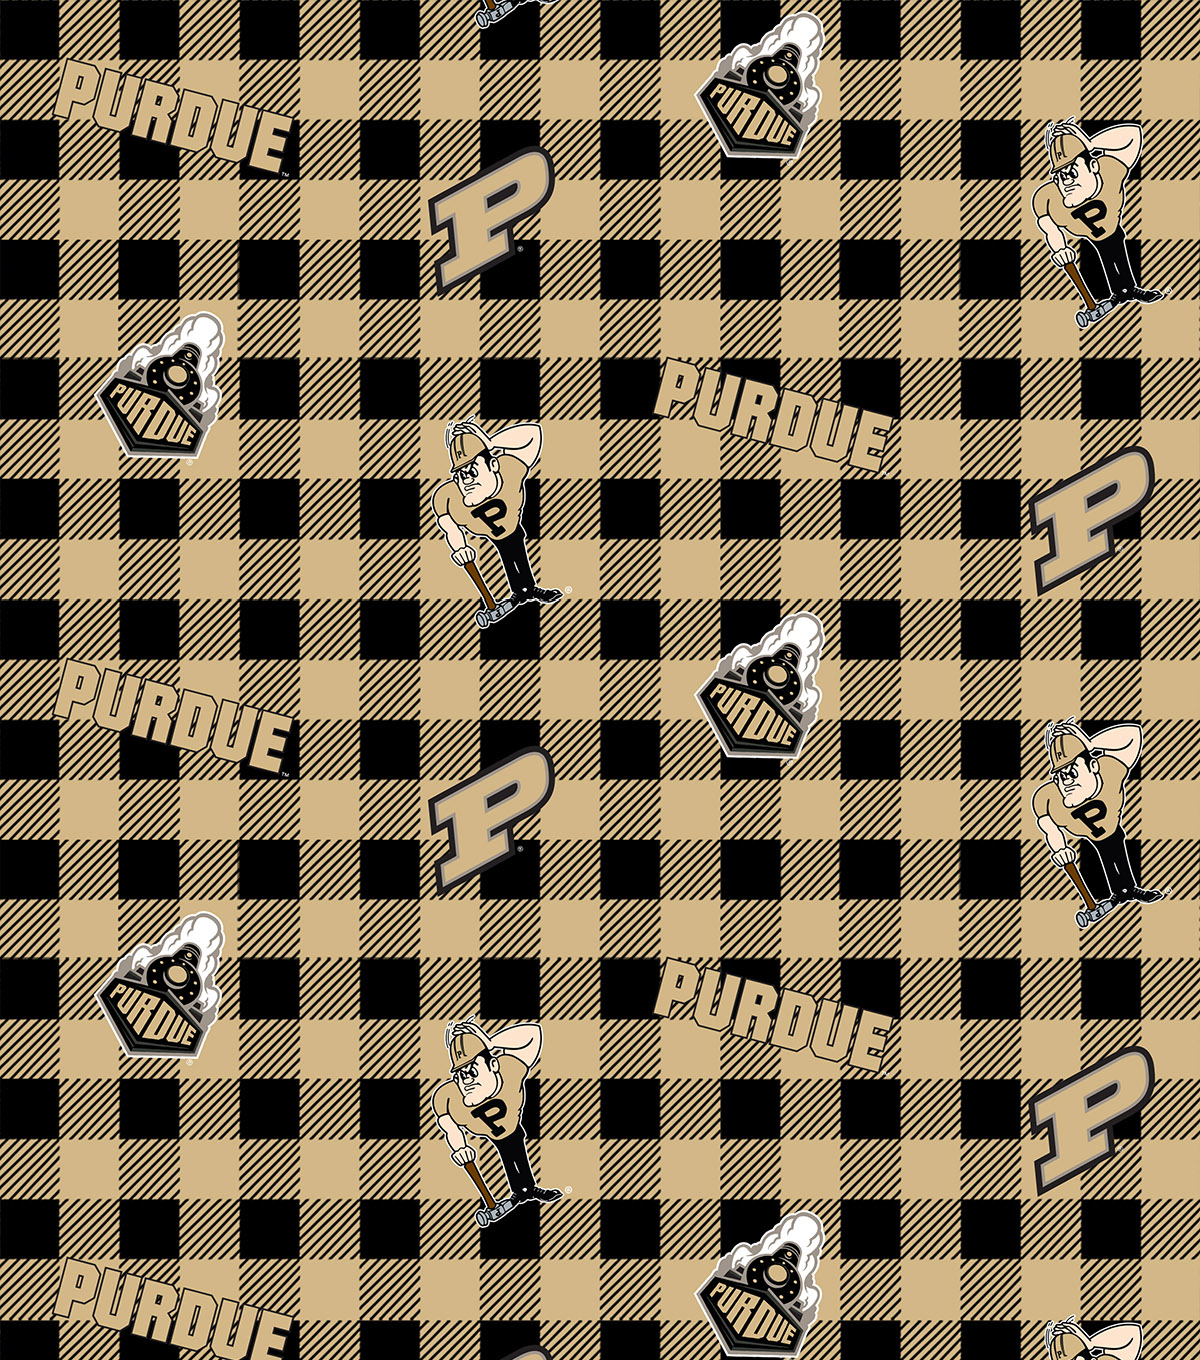 Perdue University Boilermakers Cotton Fabric-Buffalo Plaid